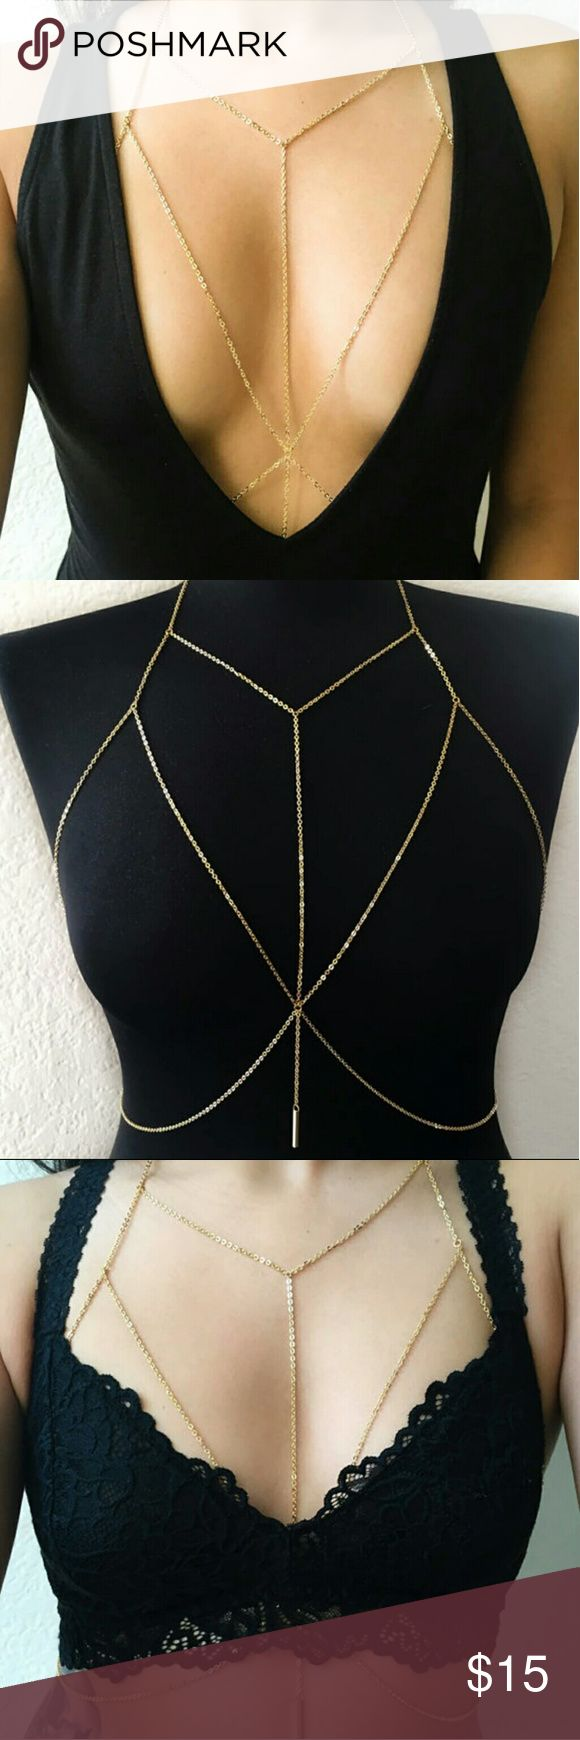 24k gold filled bodychain harness bralette Gold body chain bra Jewelry Necklaces